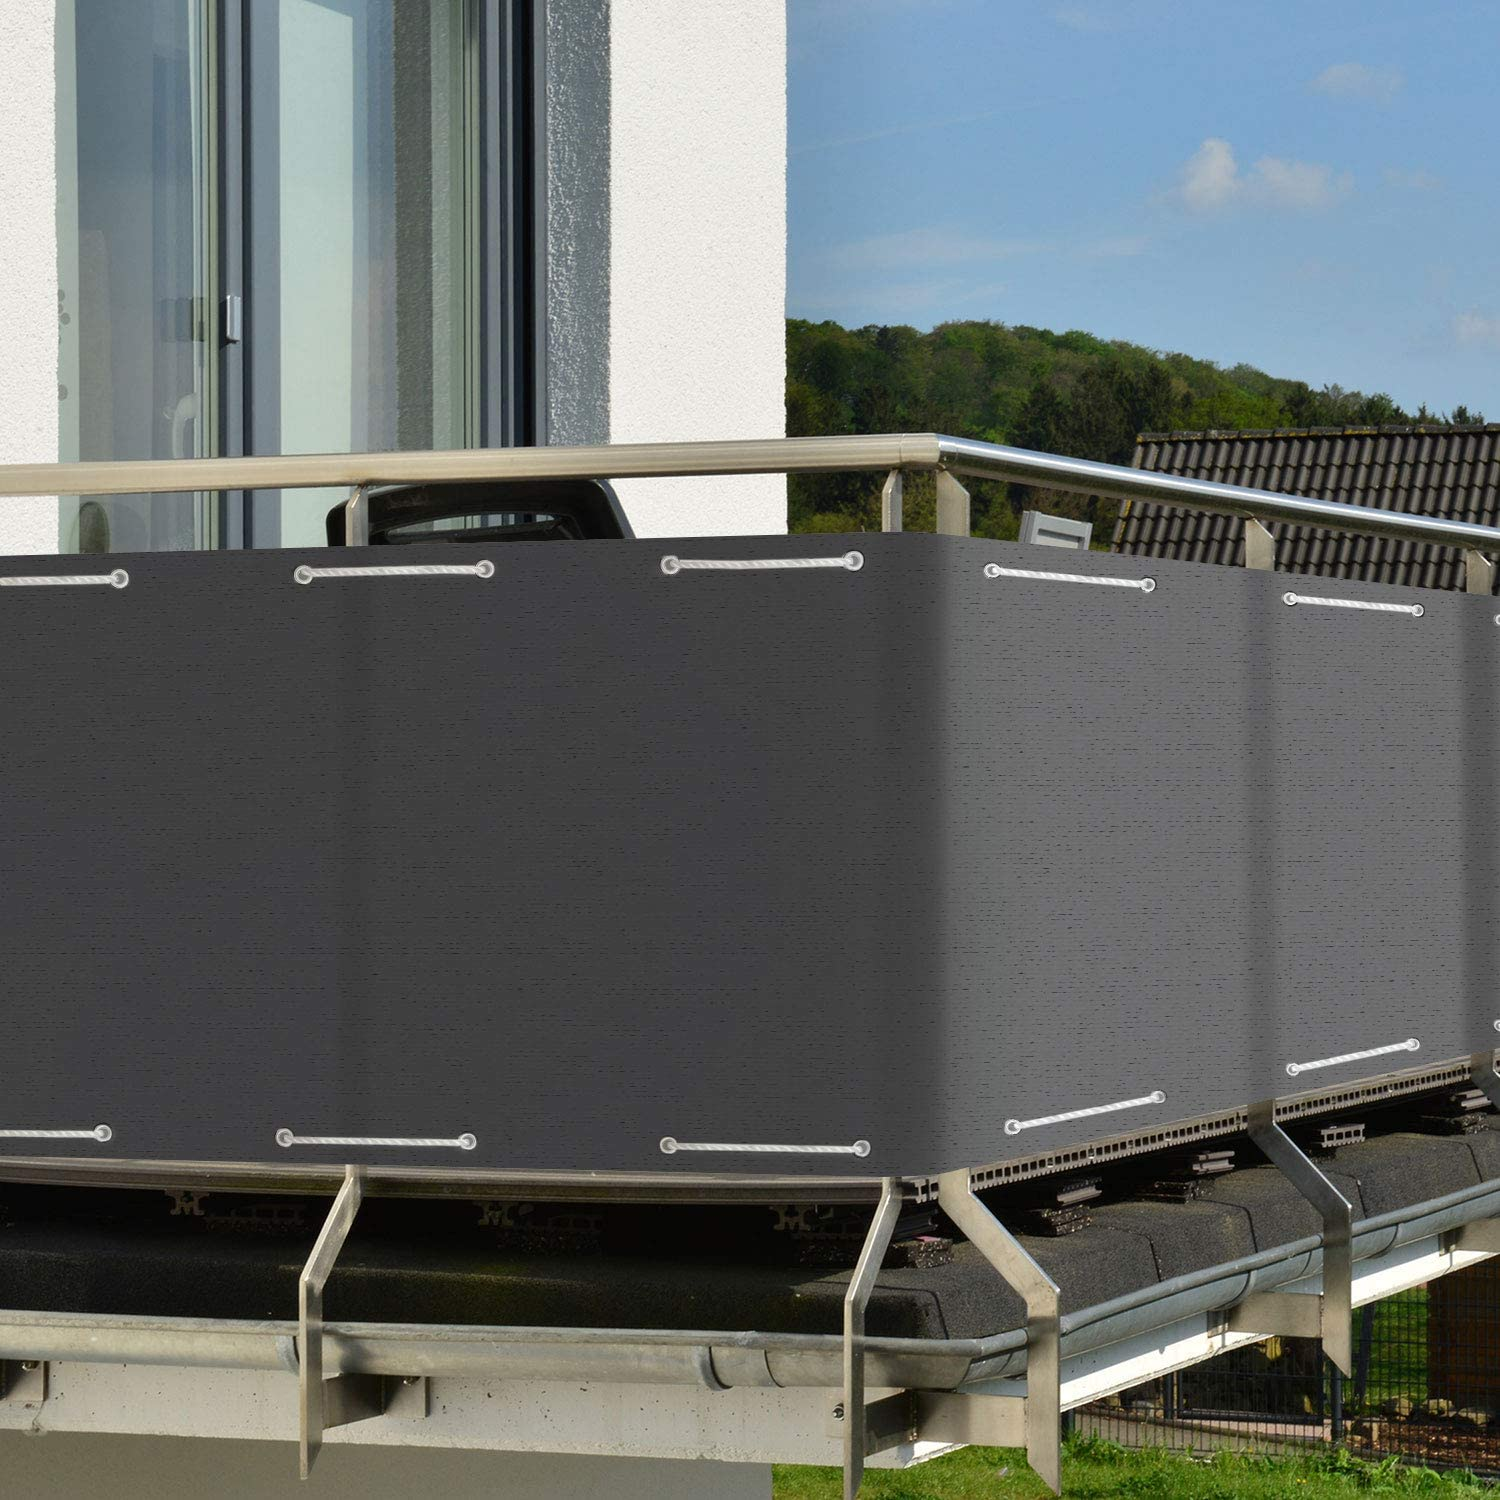 Sol Royal Balcony Privacy Screen 90x300 cm SolVision HB2 Sun Wind UV Protection Anthracite Screening with Eyelets /& Cord